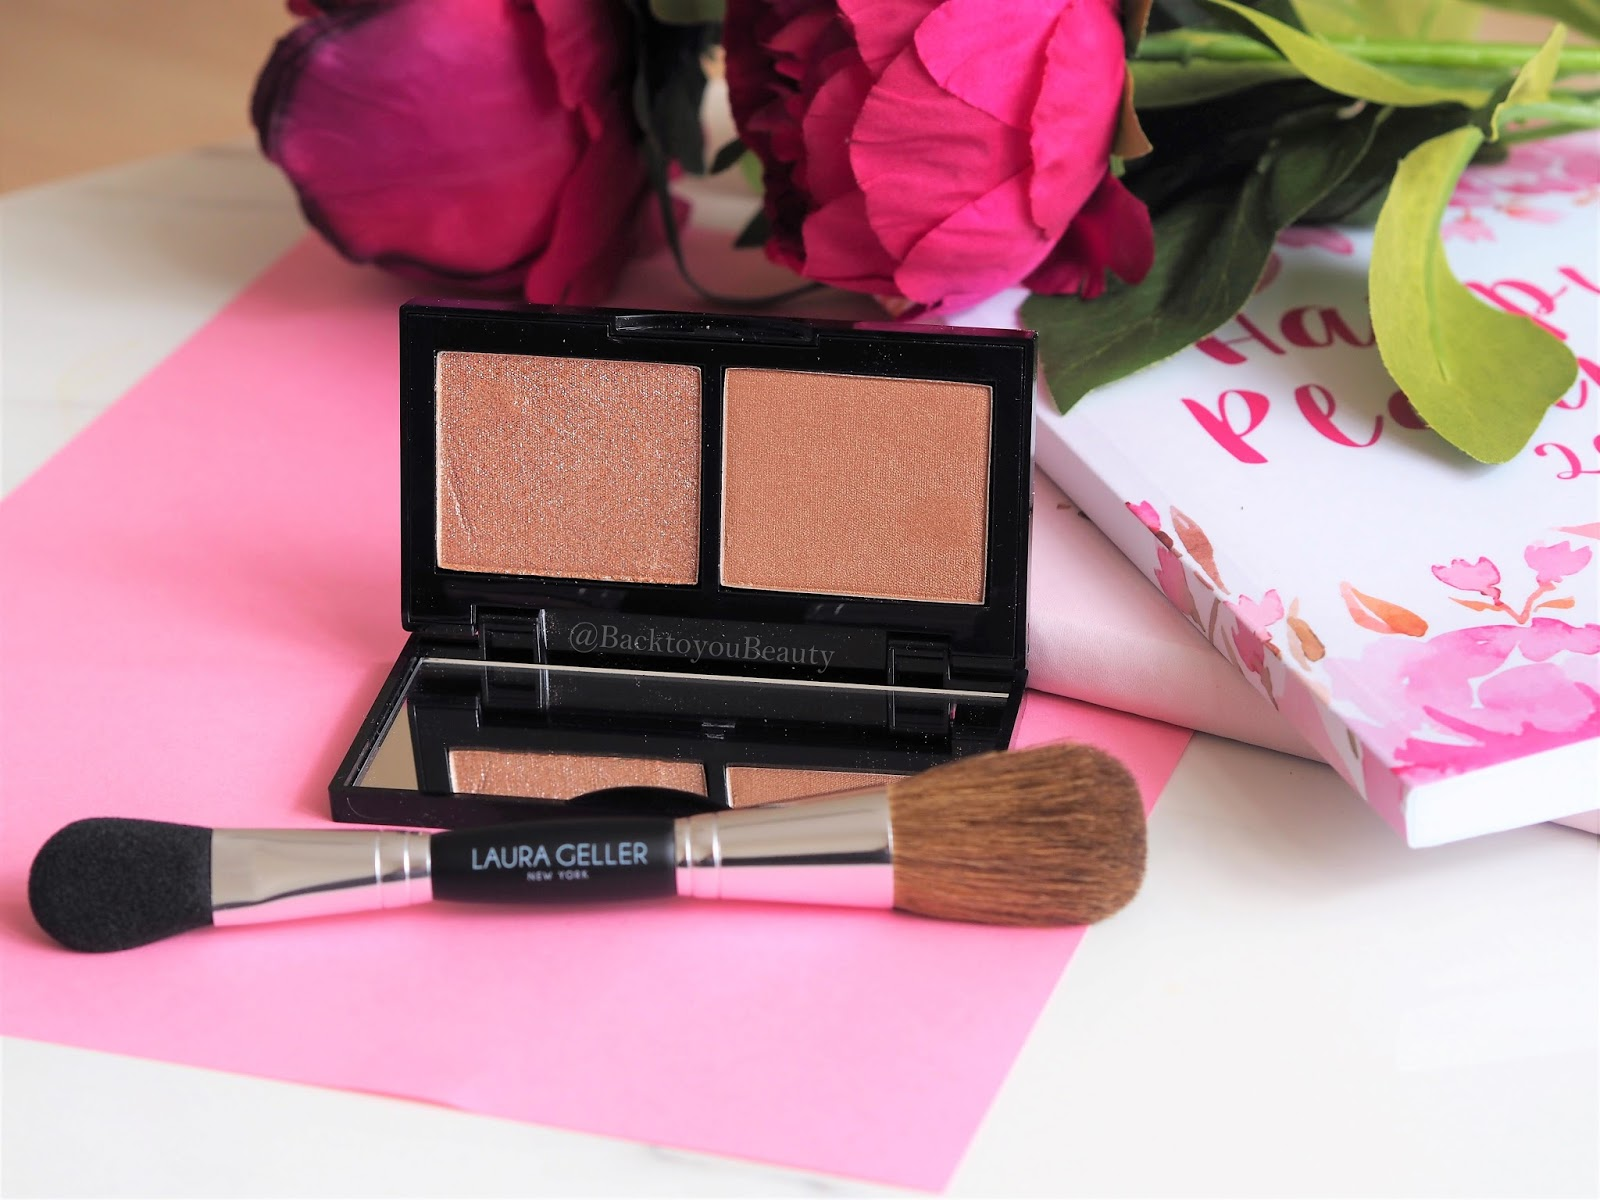 Laura Geller Hi-Def-Glow illuminator duo in Bed of Roses